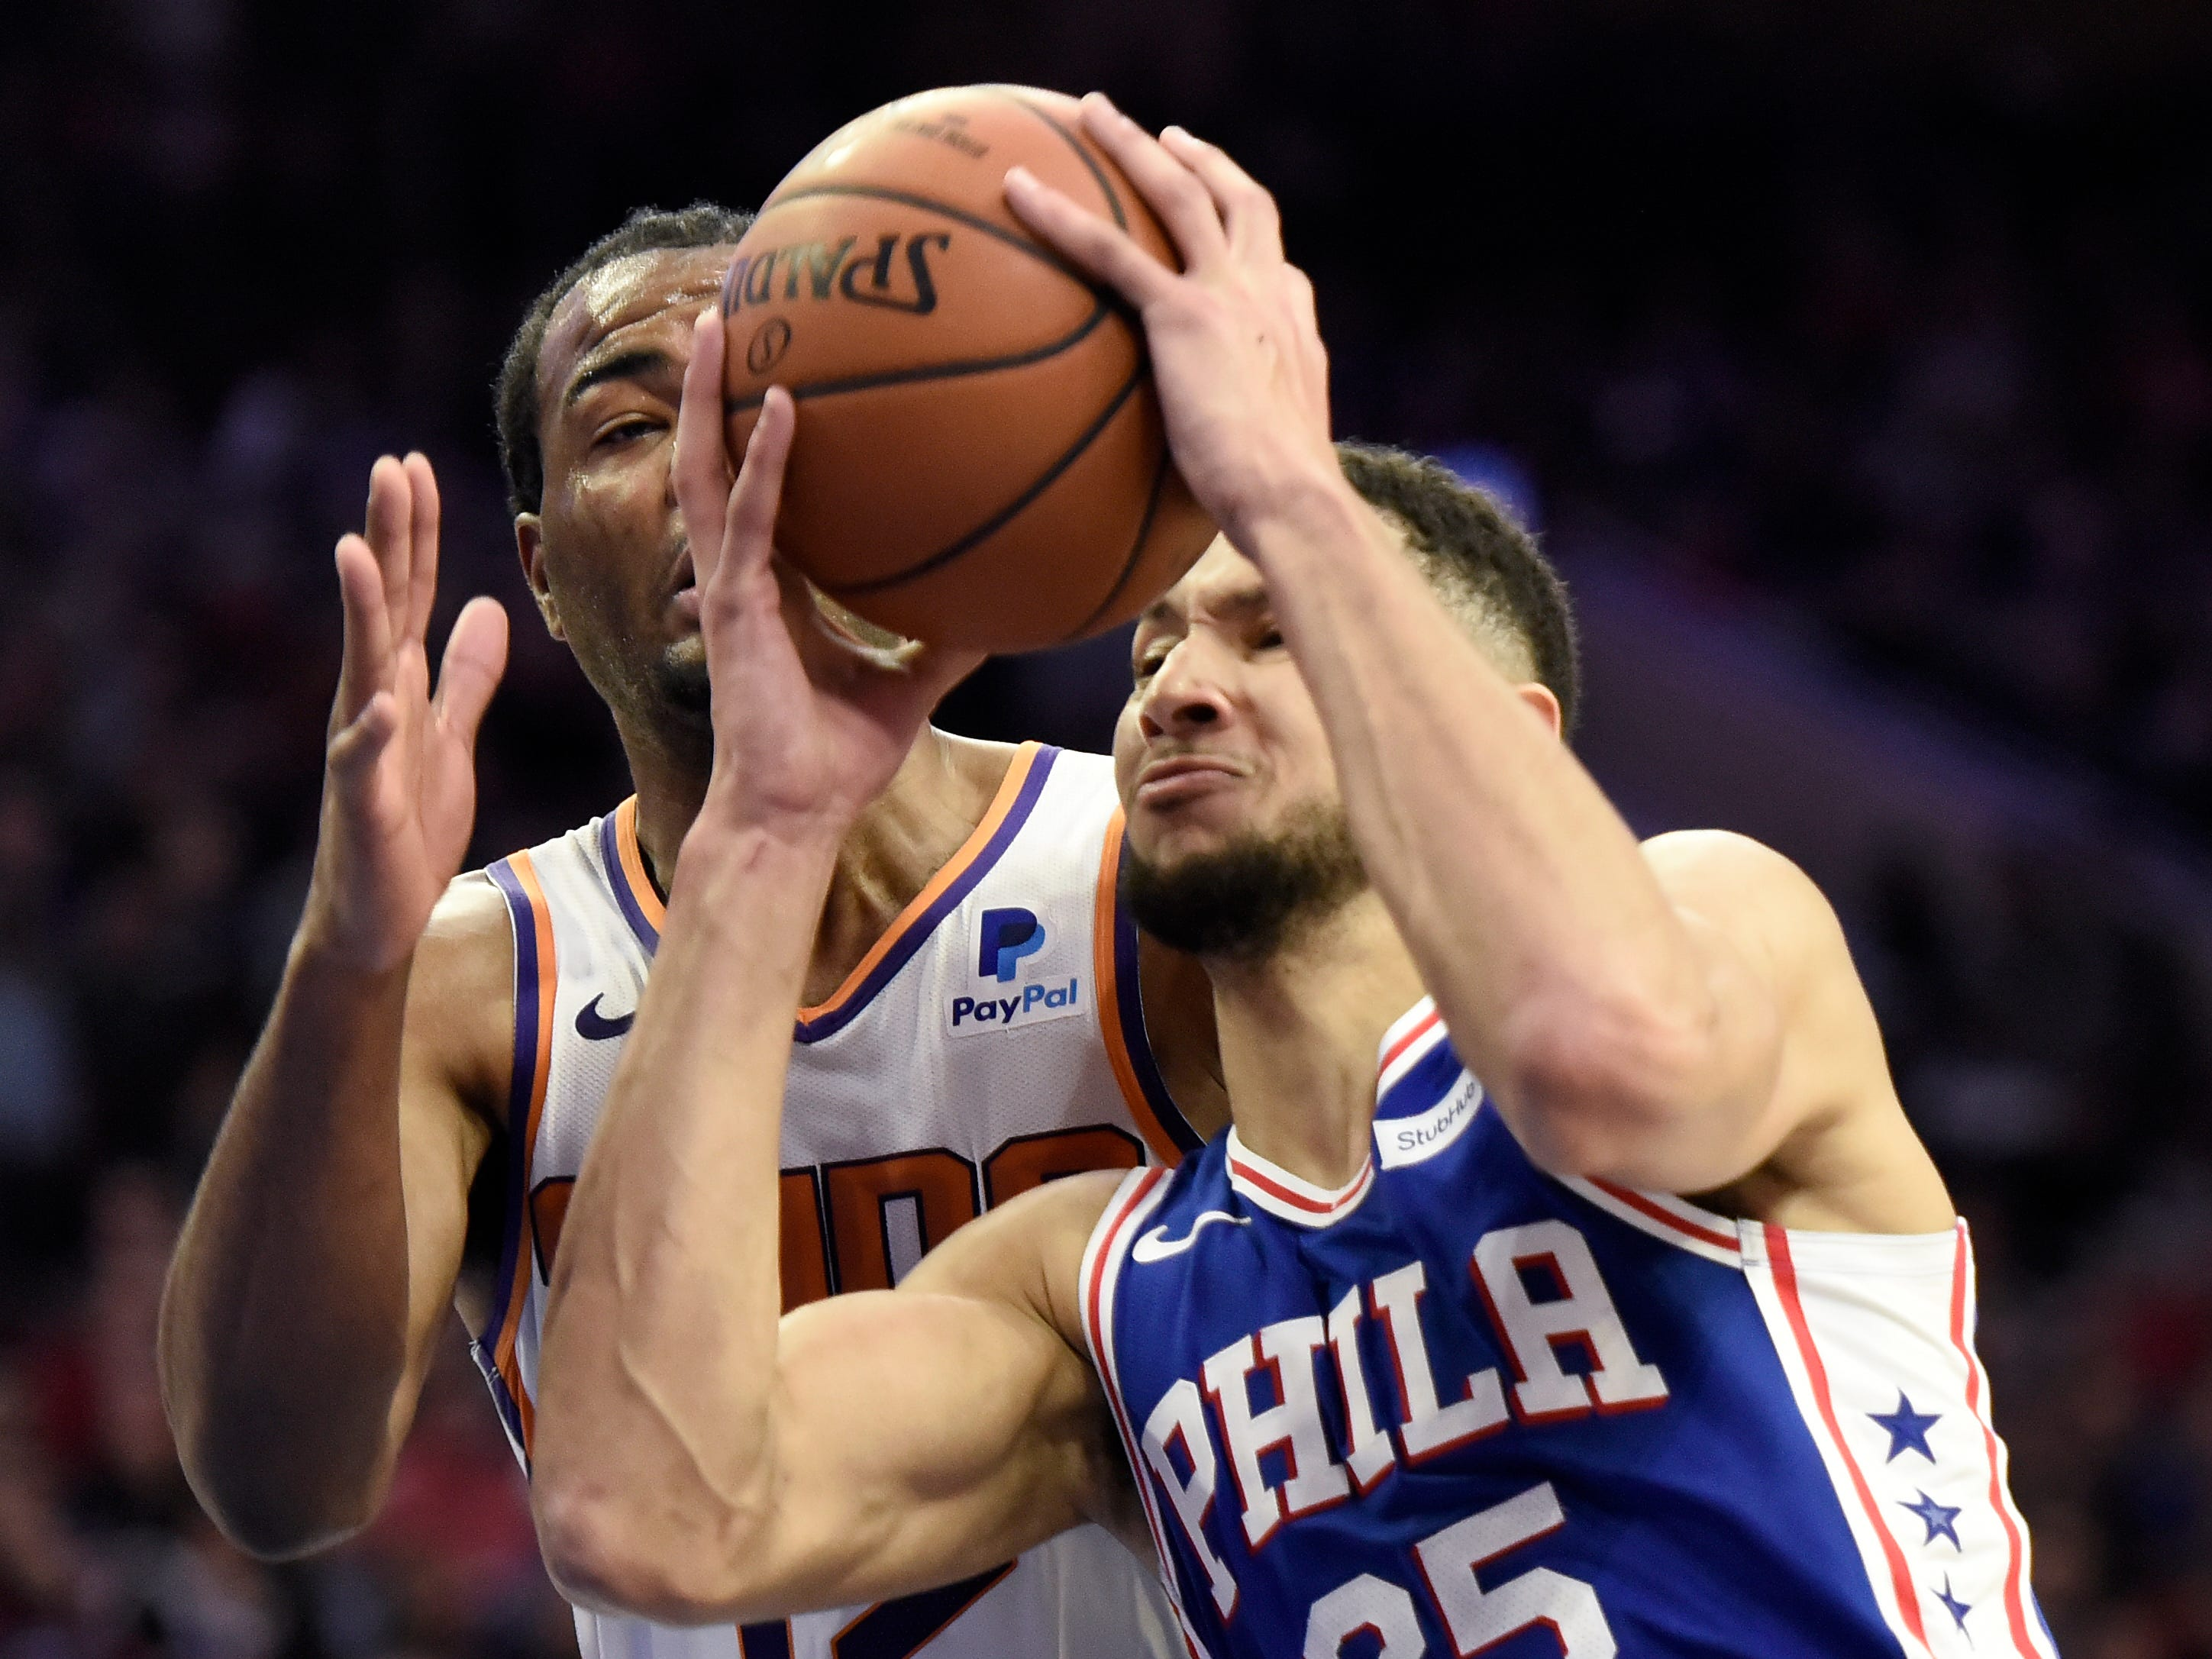 Philadelphia 76ers' Ben Simmons (25) drives the ball to the basket as Phoenix Suns' TJ Warren defends in the second half of an NBA basketball game, Monday, Nov. 19, 2018, in Philadelphia. The 76ers beat the Suns 119-114.